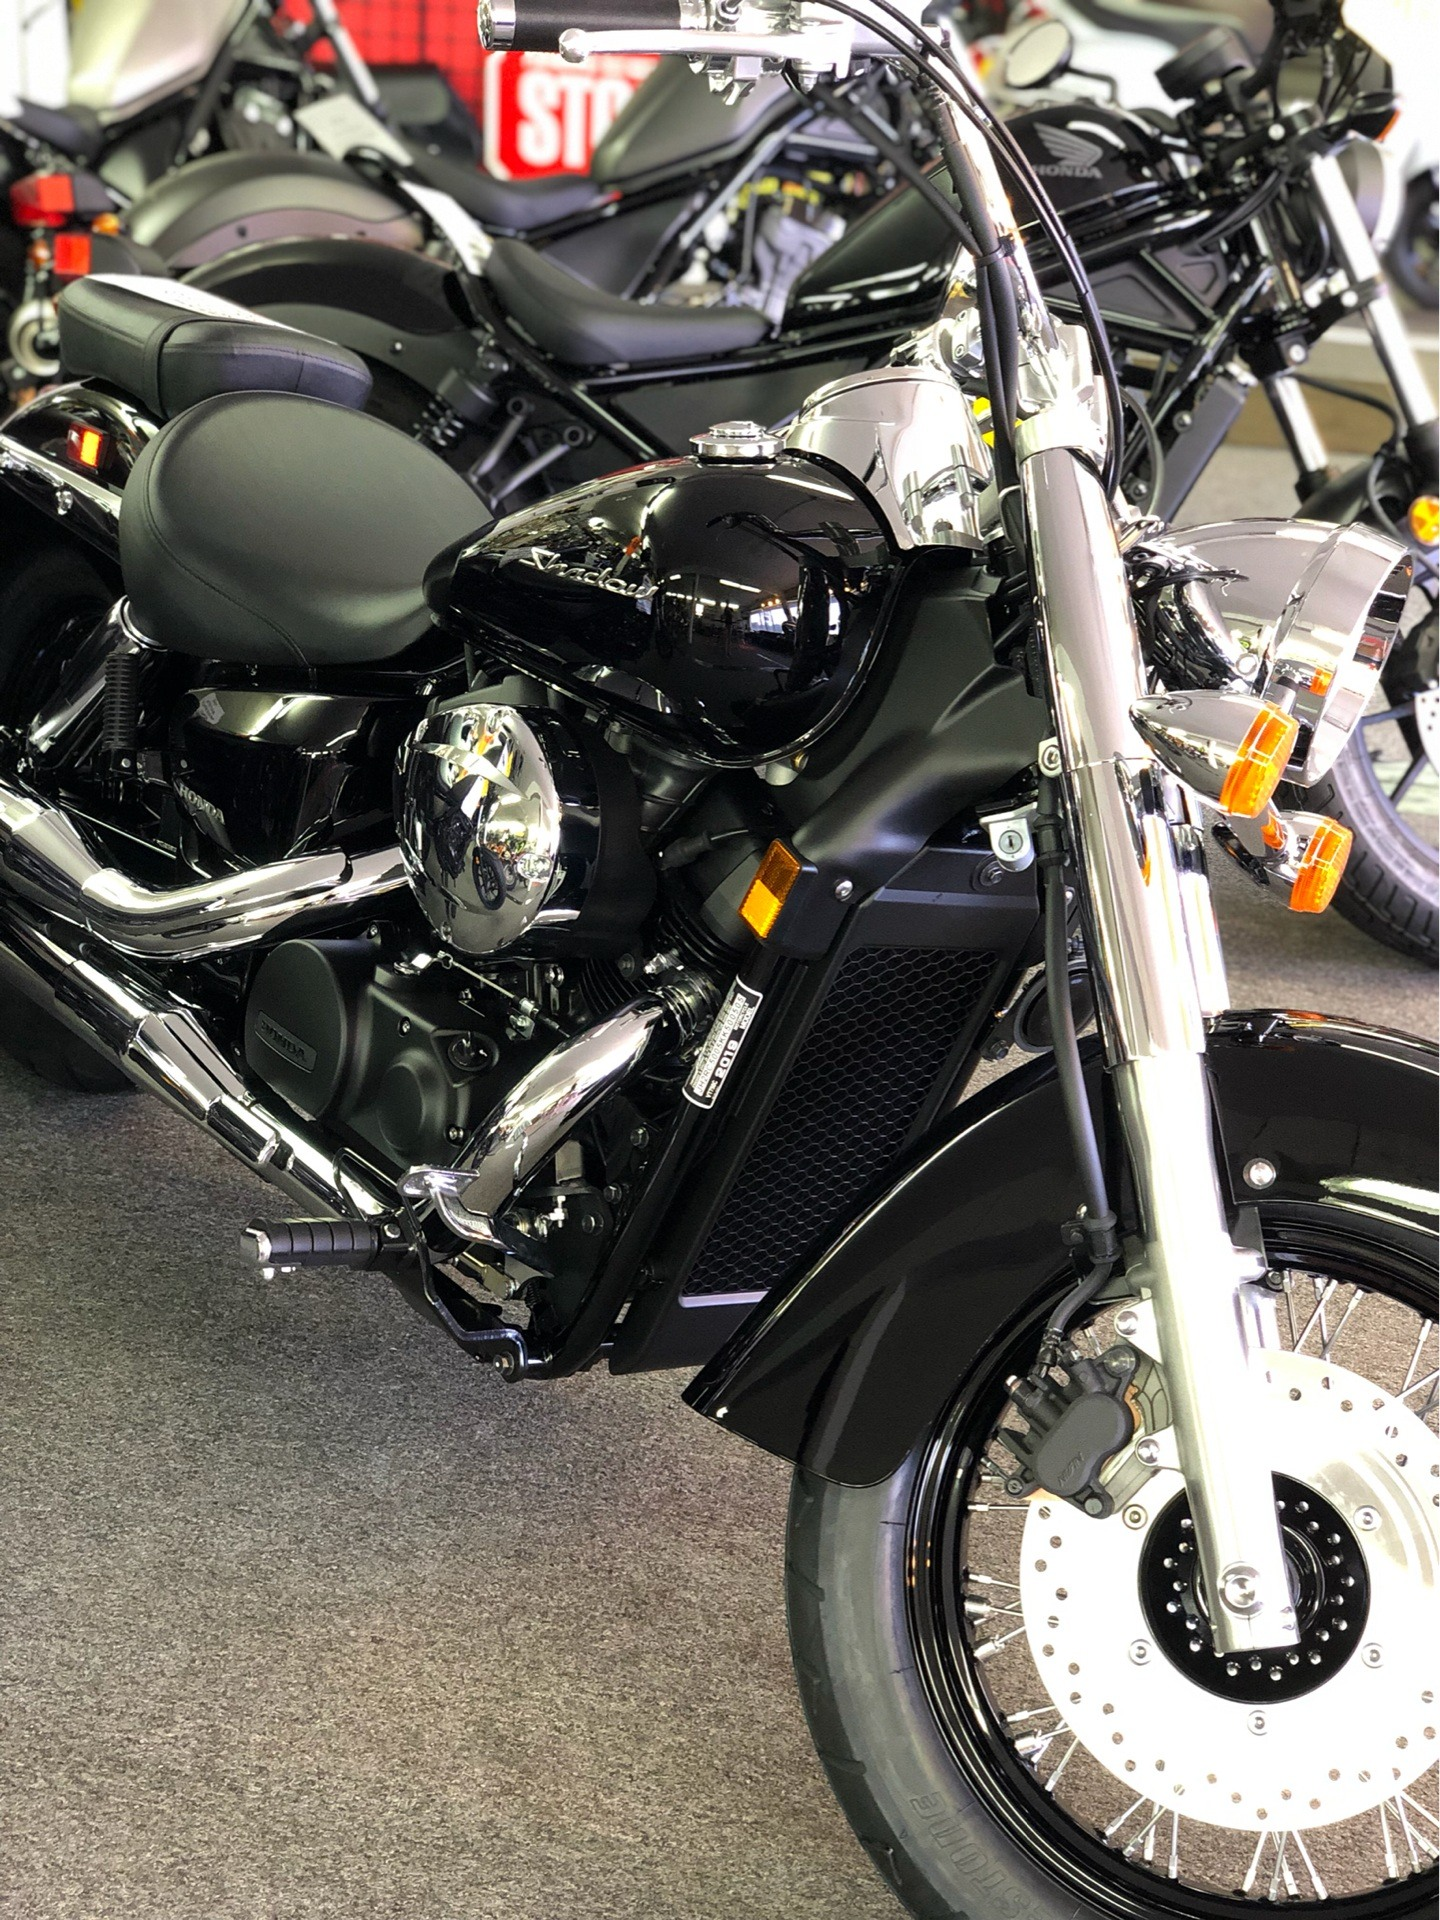 2019 Honda Shadow Aero 750 in Aurora, Illinois - Photo 4